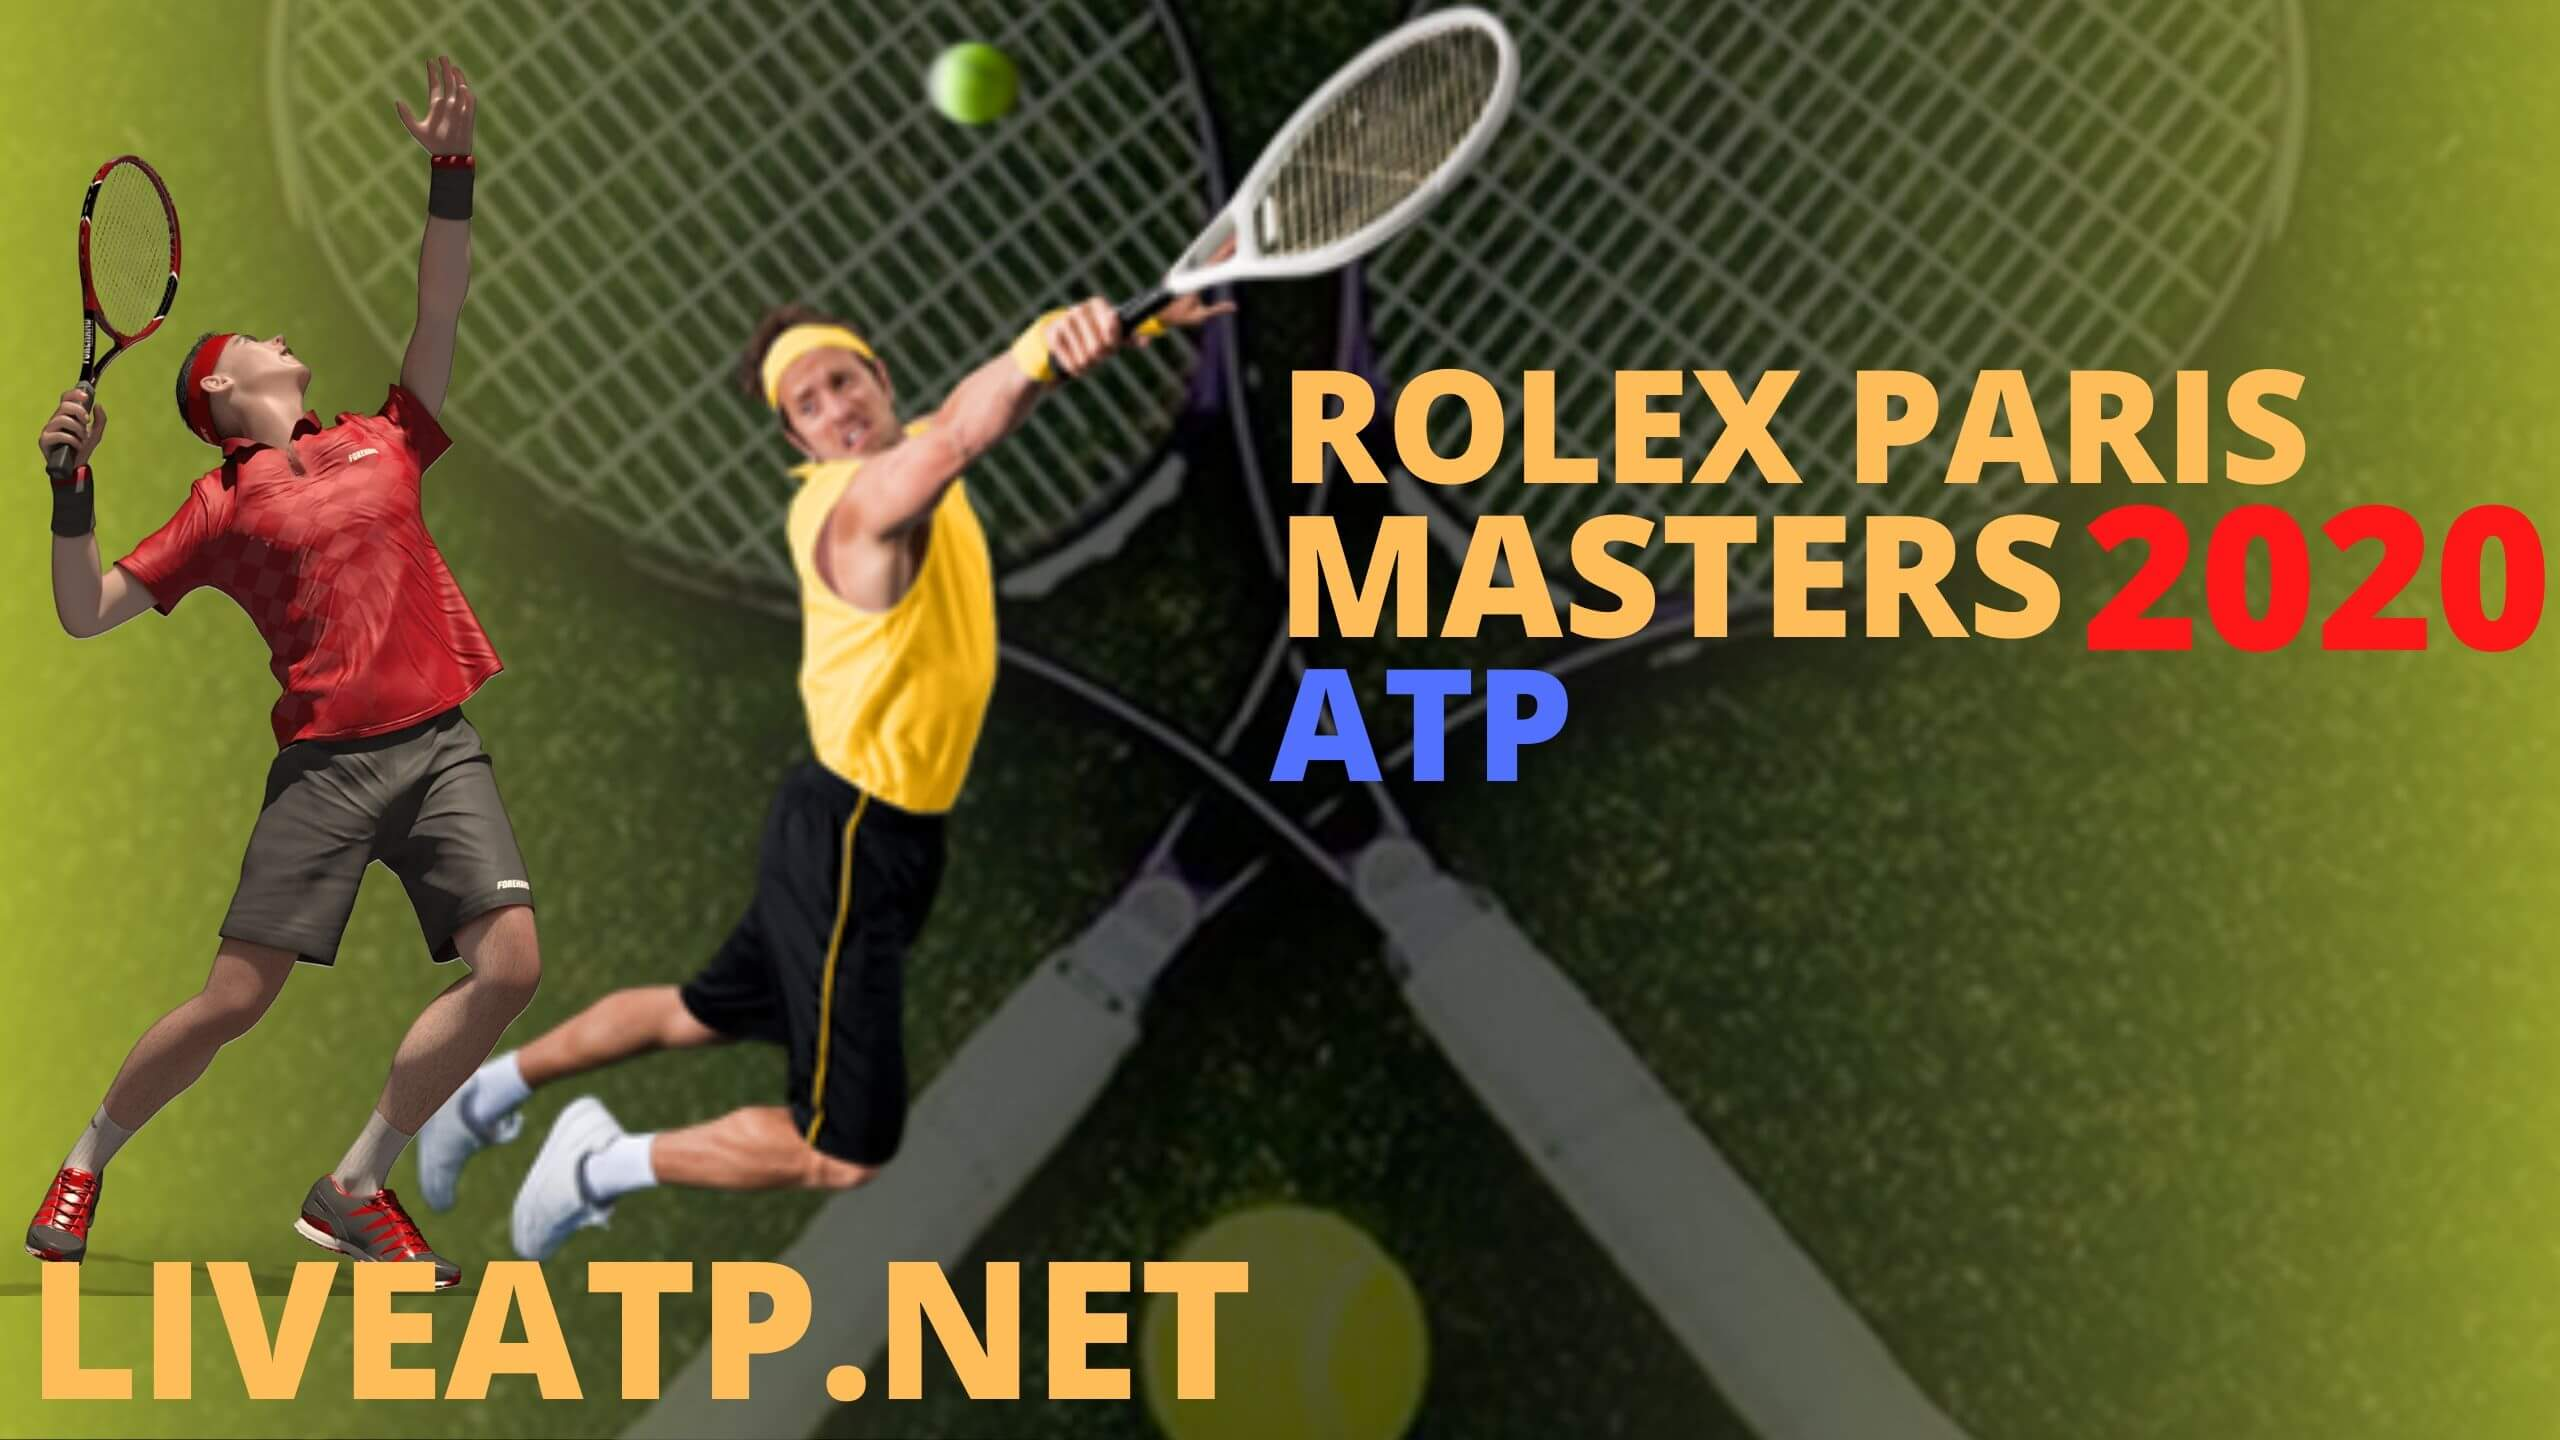 Rolex Paris Masters Live Stream 2020 | Semi Final